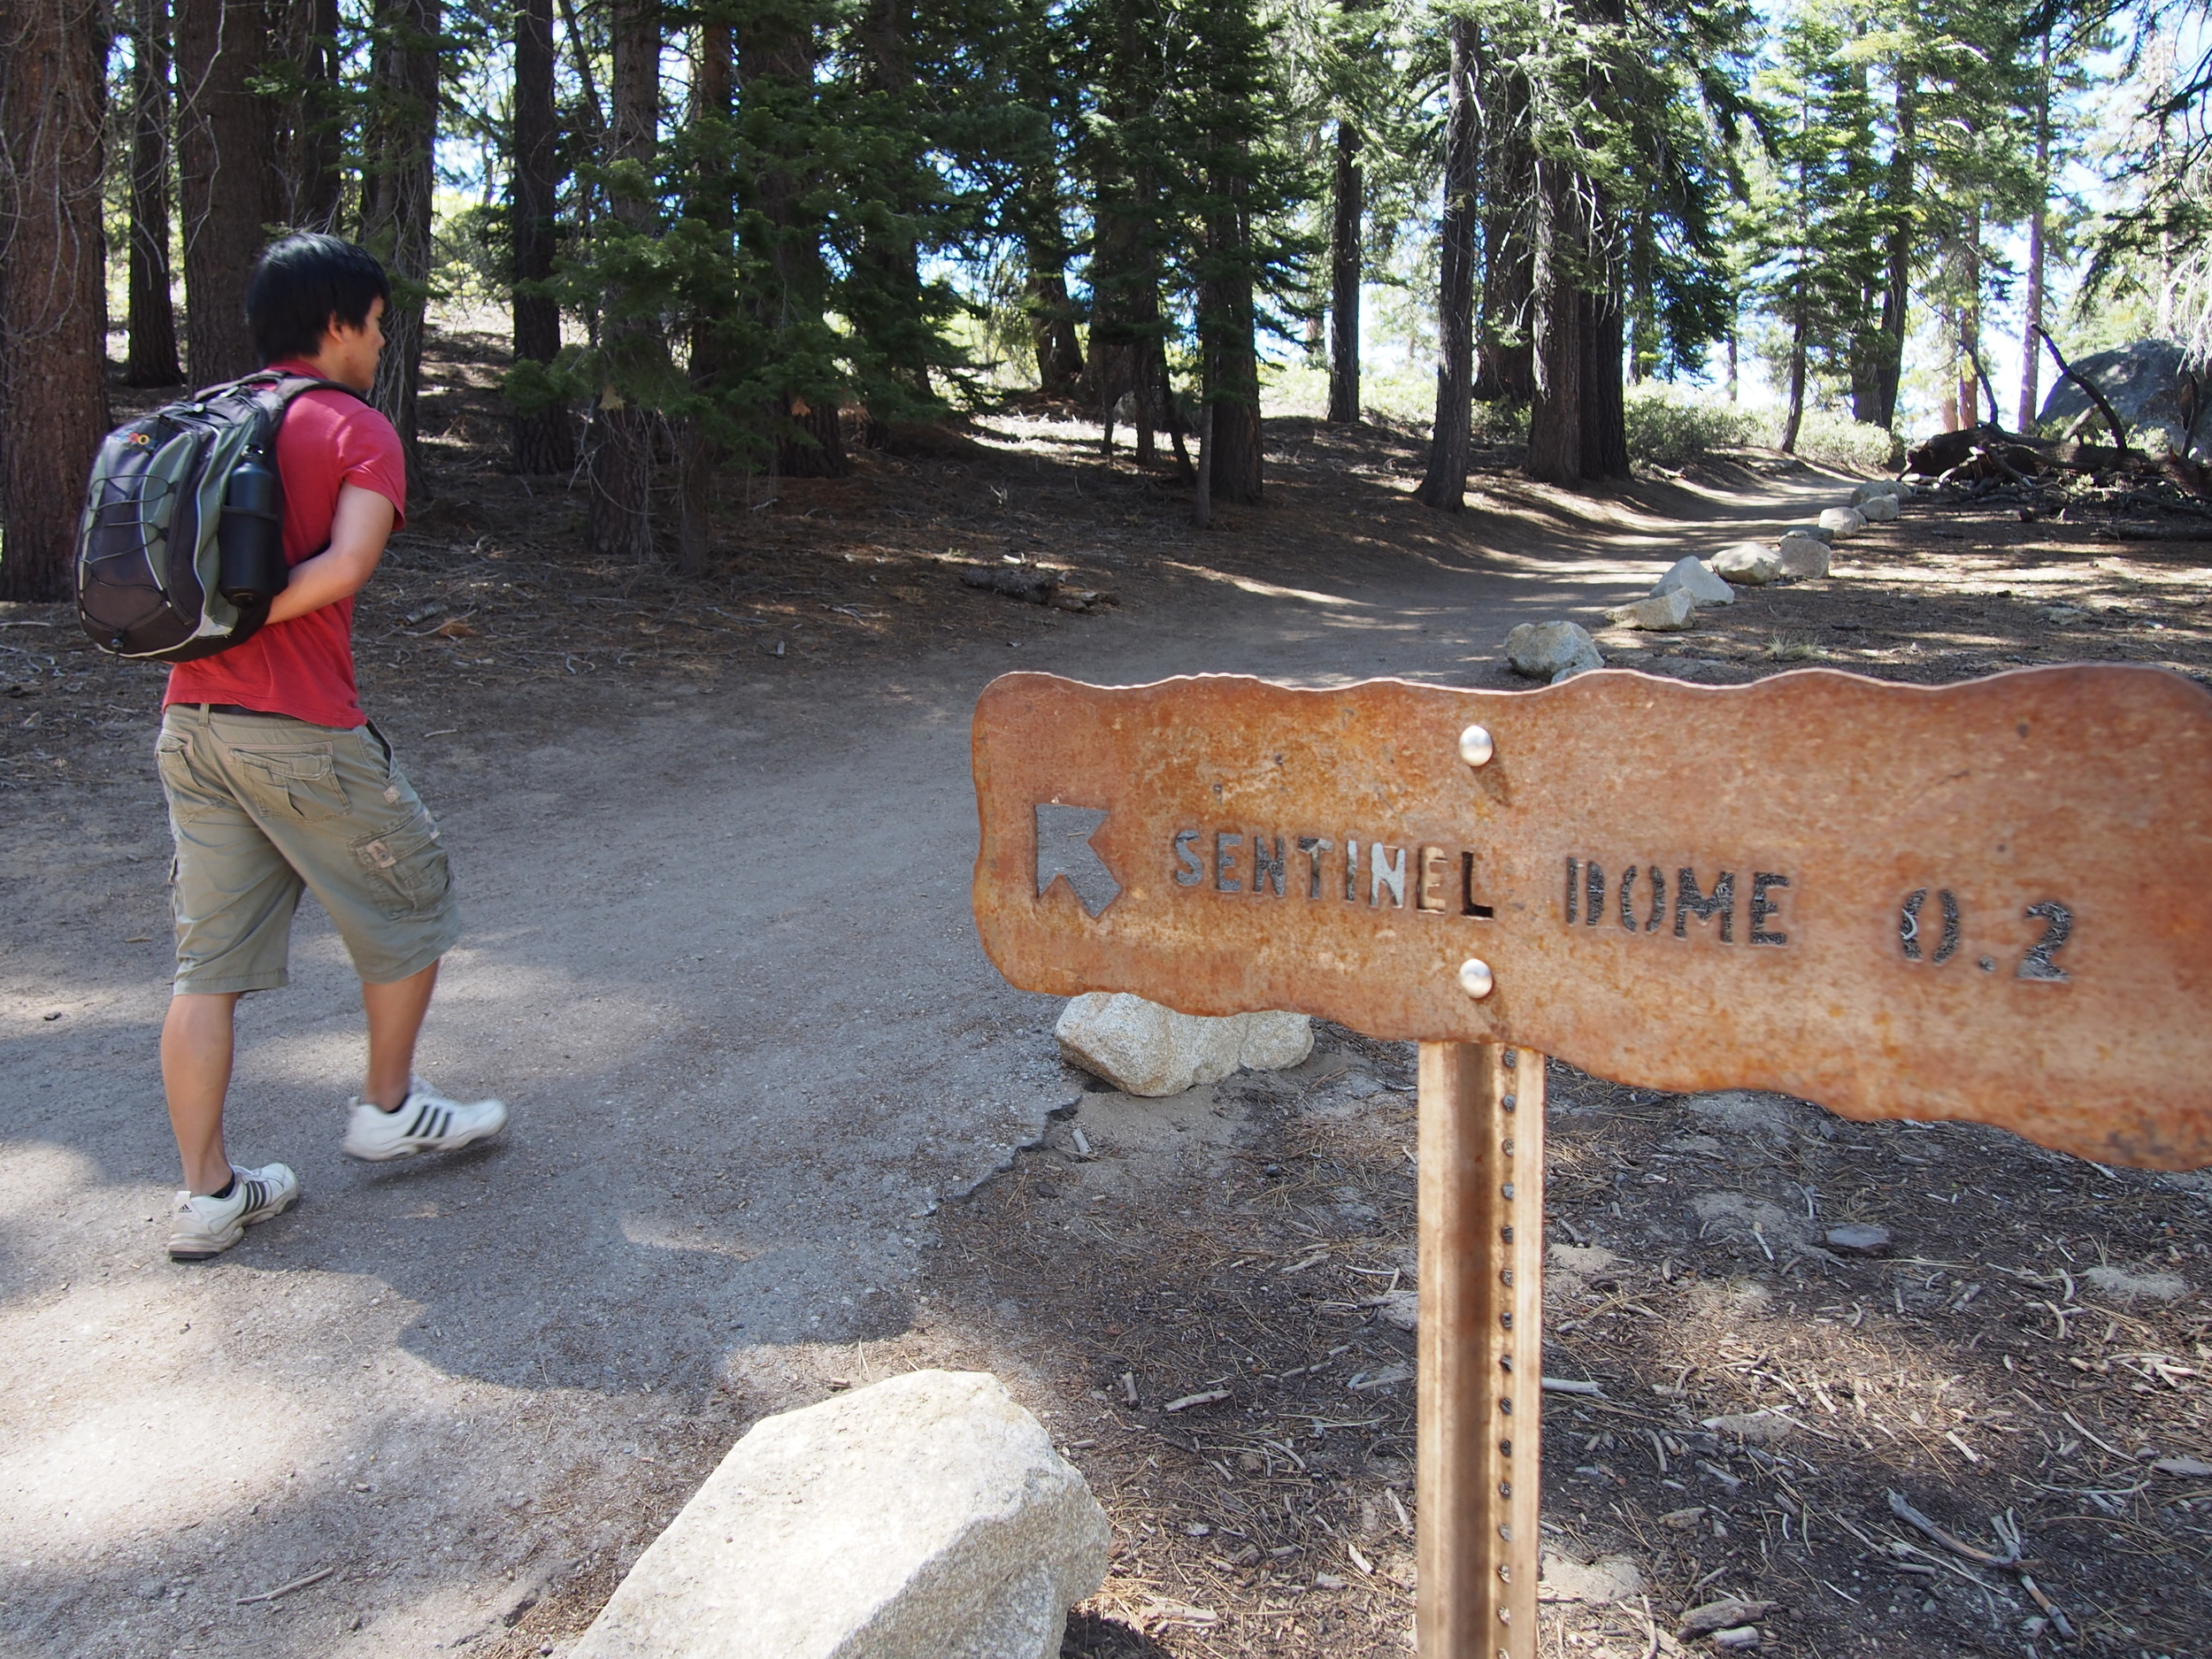 The trail to Sentinel Dome is easy, well maintained, and even paved at this section